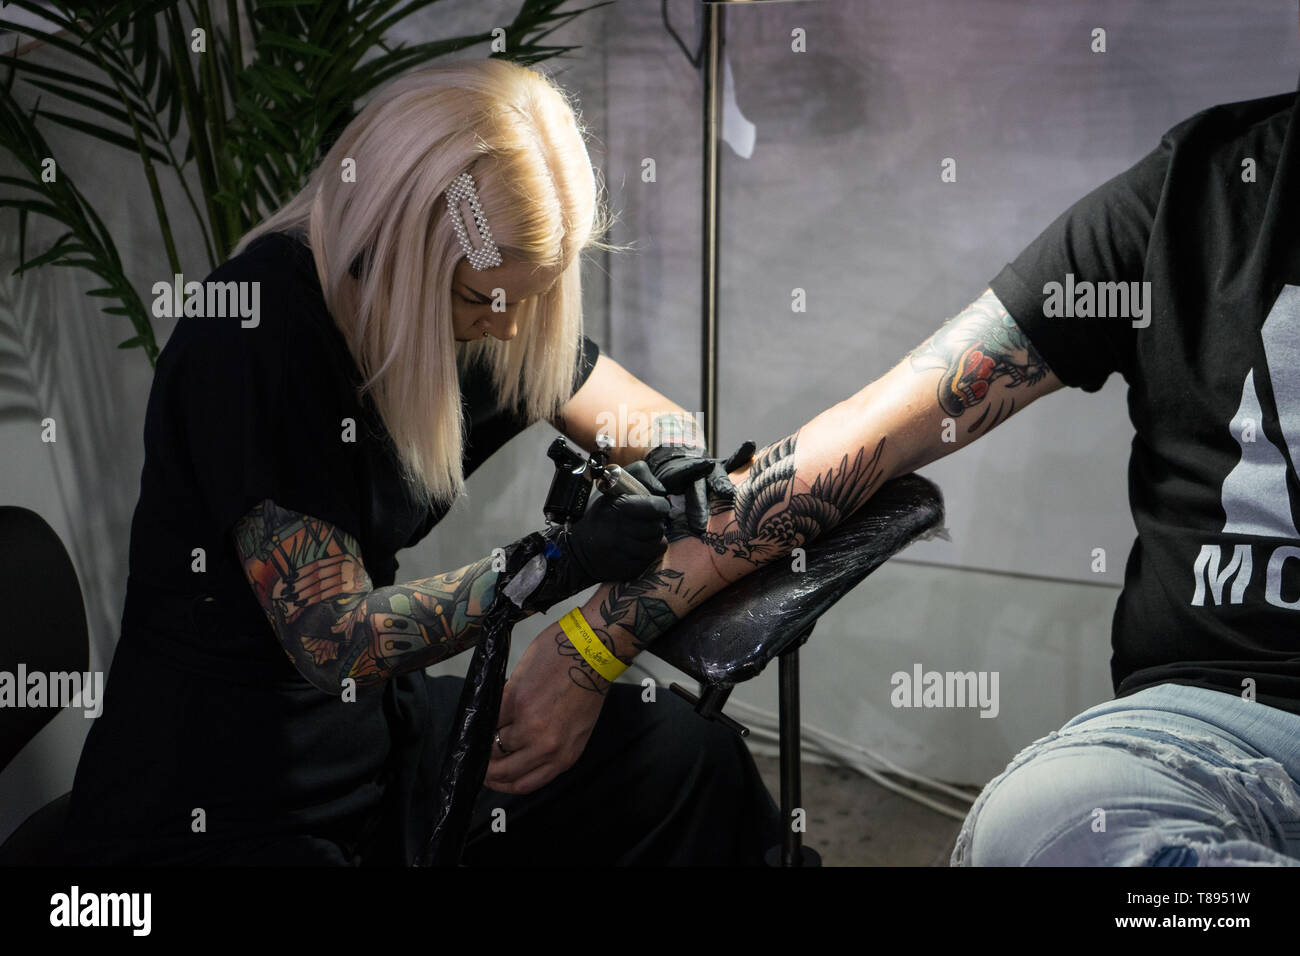 May 10, 2019: Athens, Greece: A tattoo artist seen making a tattoo during the event.The Athens Tattoo Convention is a three day annual convention about tattoo and it takes place in Athens, Greece. It has been recognized as one of the best in Europe with visitors from all over the world who come exclusively for the Athens Tattoo Convention experience and also to meet some of the world's most respected tattoo artists. Credit: Nikos Pekiaridis/SOPA Images/ZUMA Wire/Alamy Live News - Stock Image